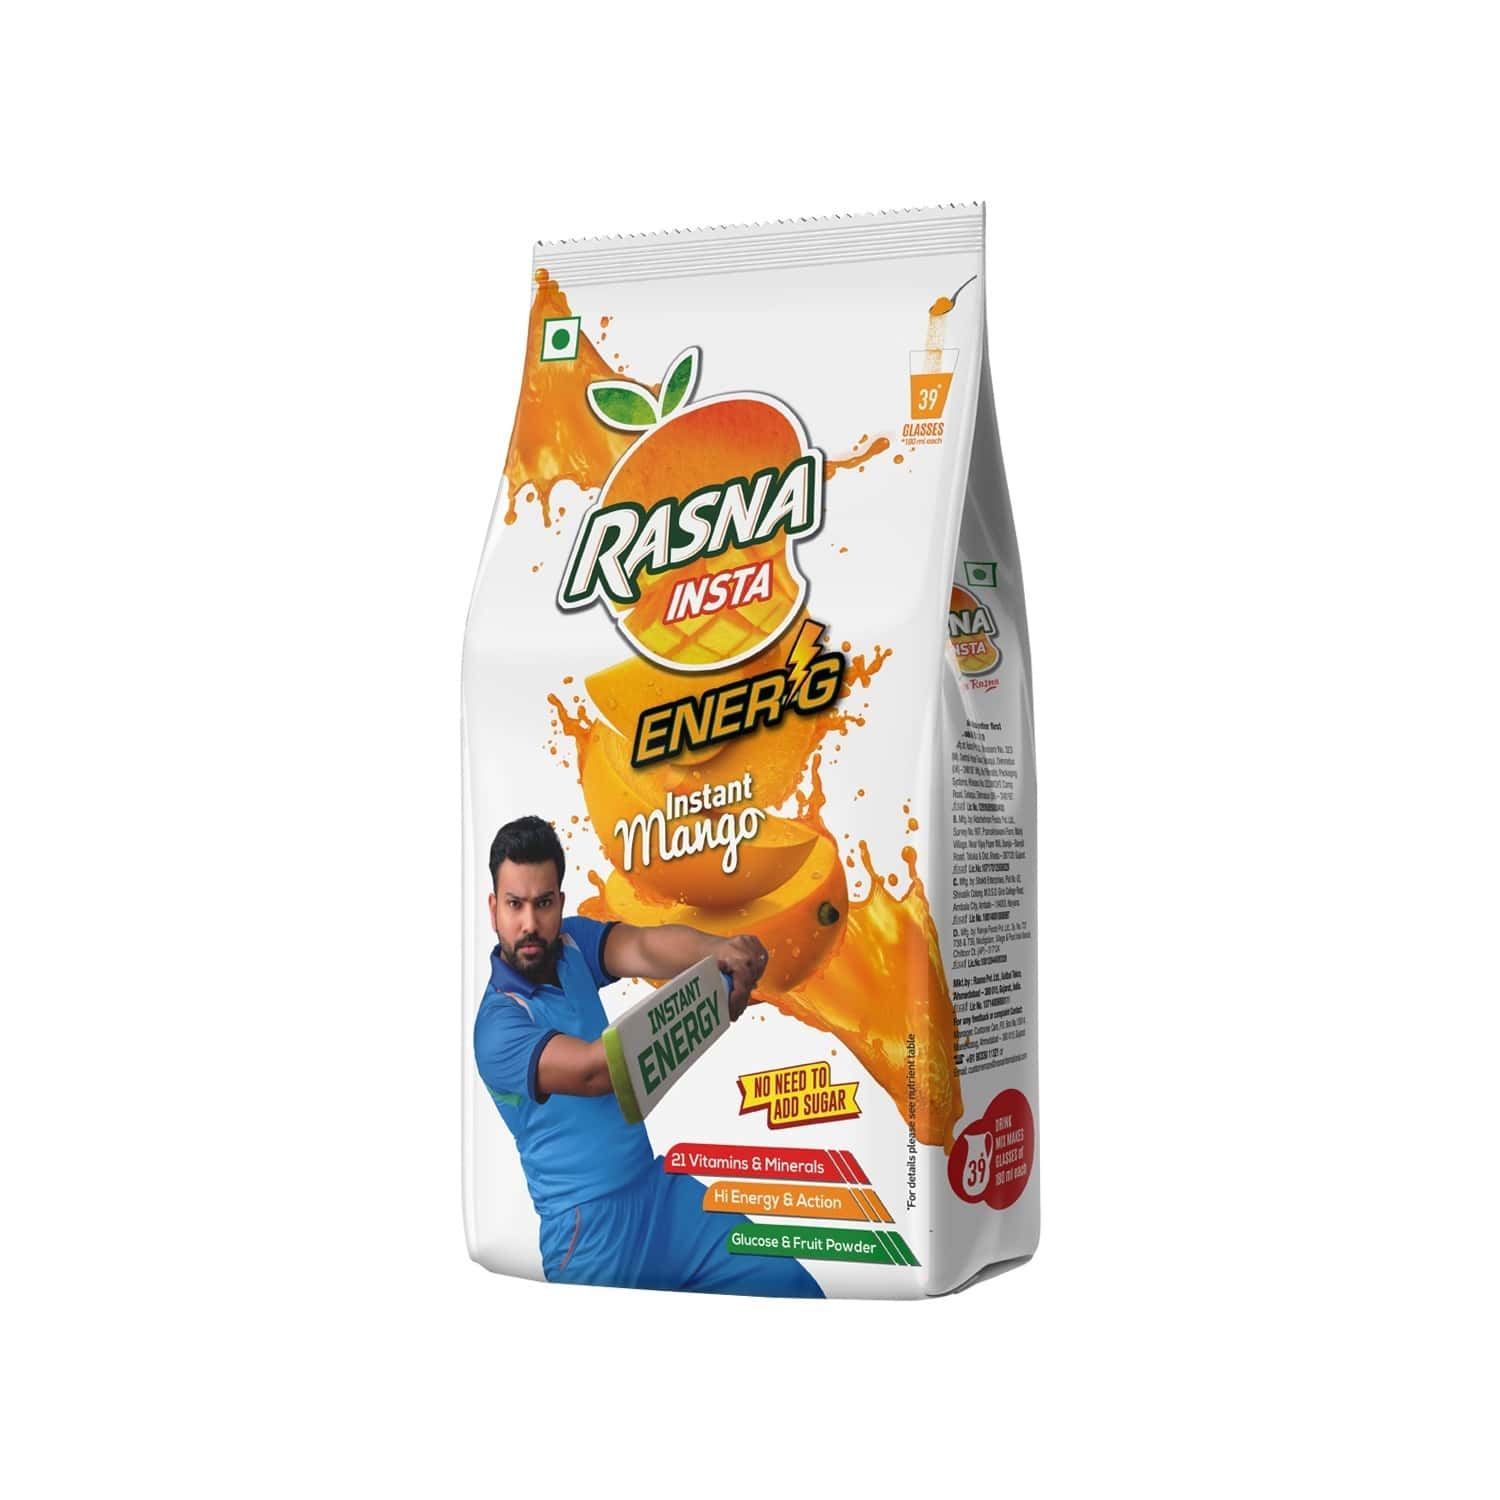 Rasna Insta Drink Concentrate Mix 750 G Pack - Mango